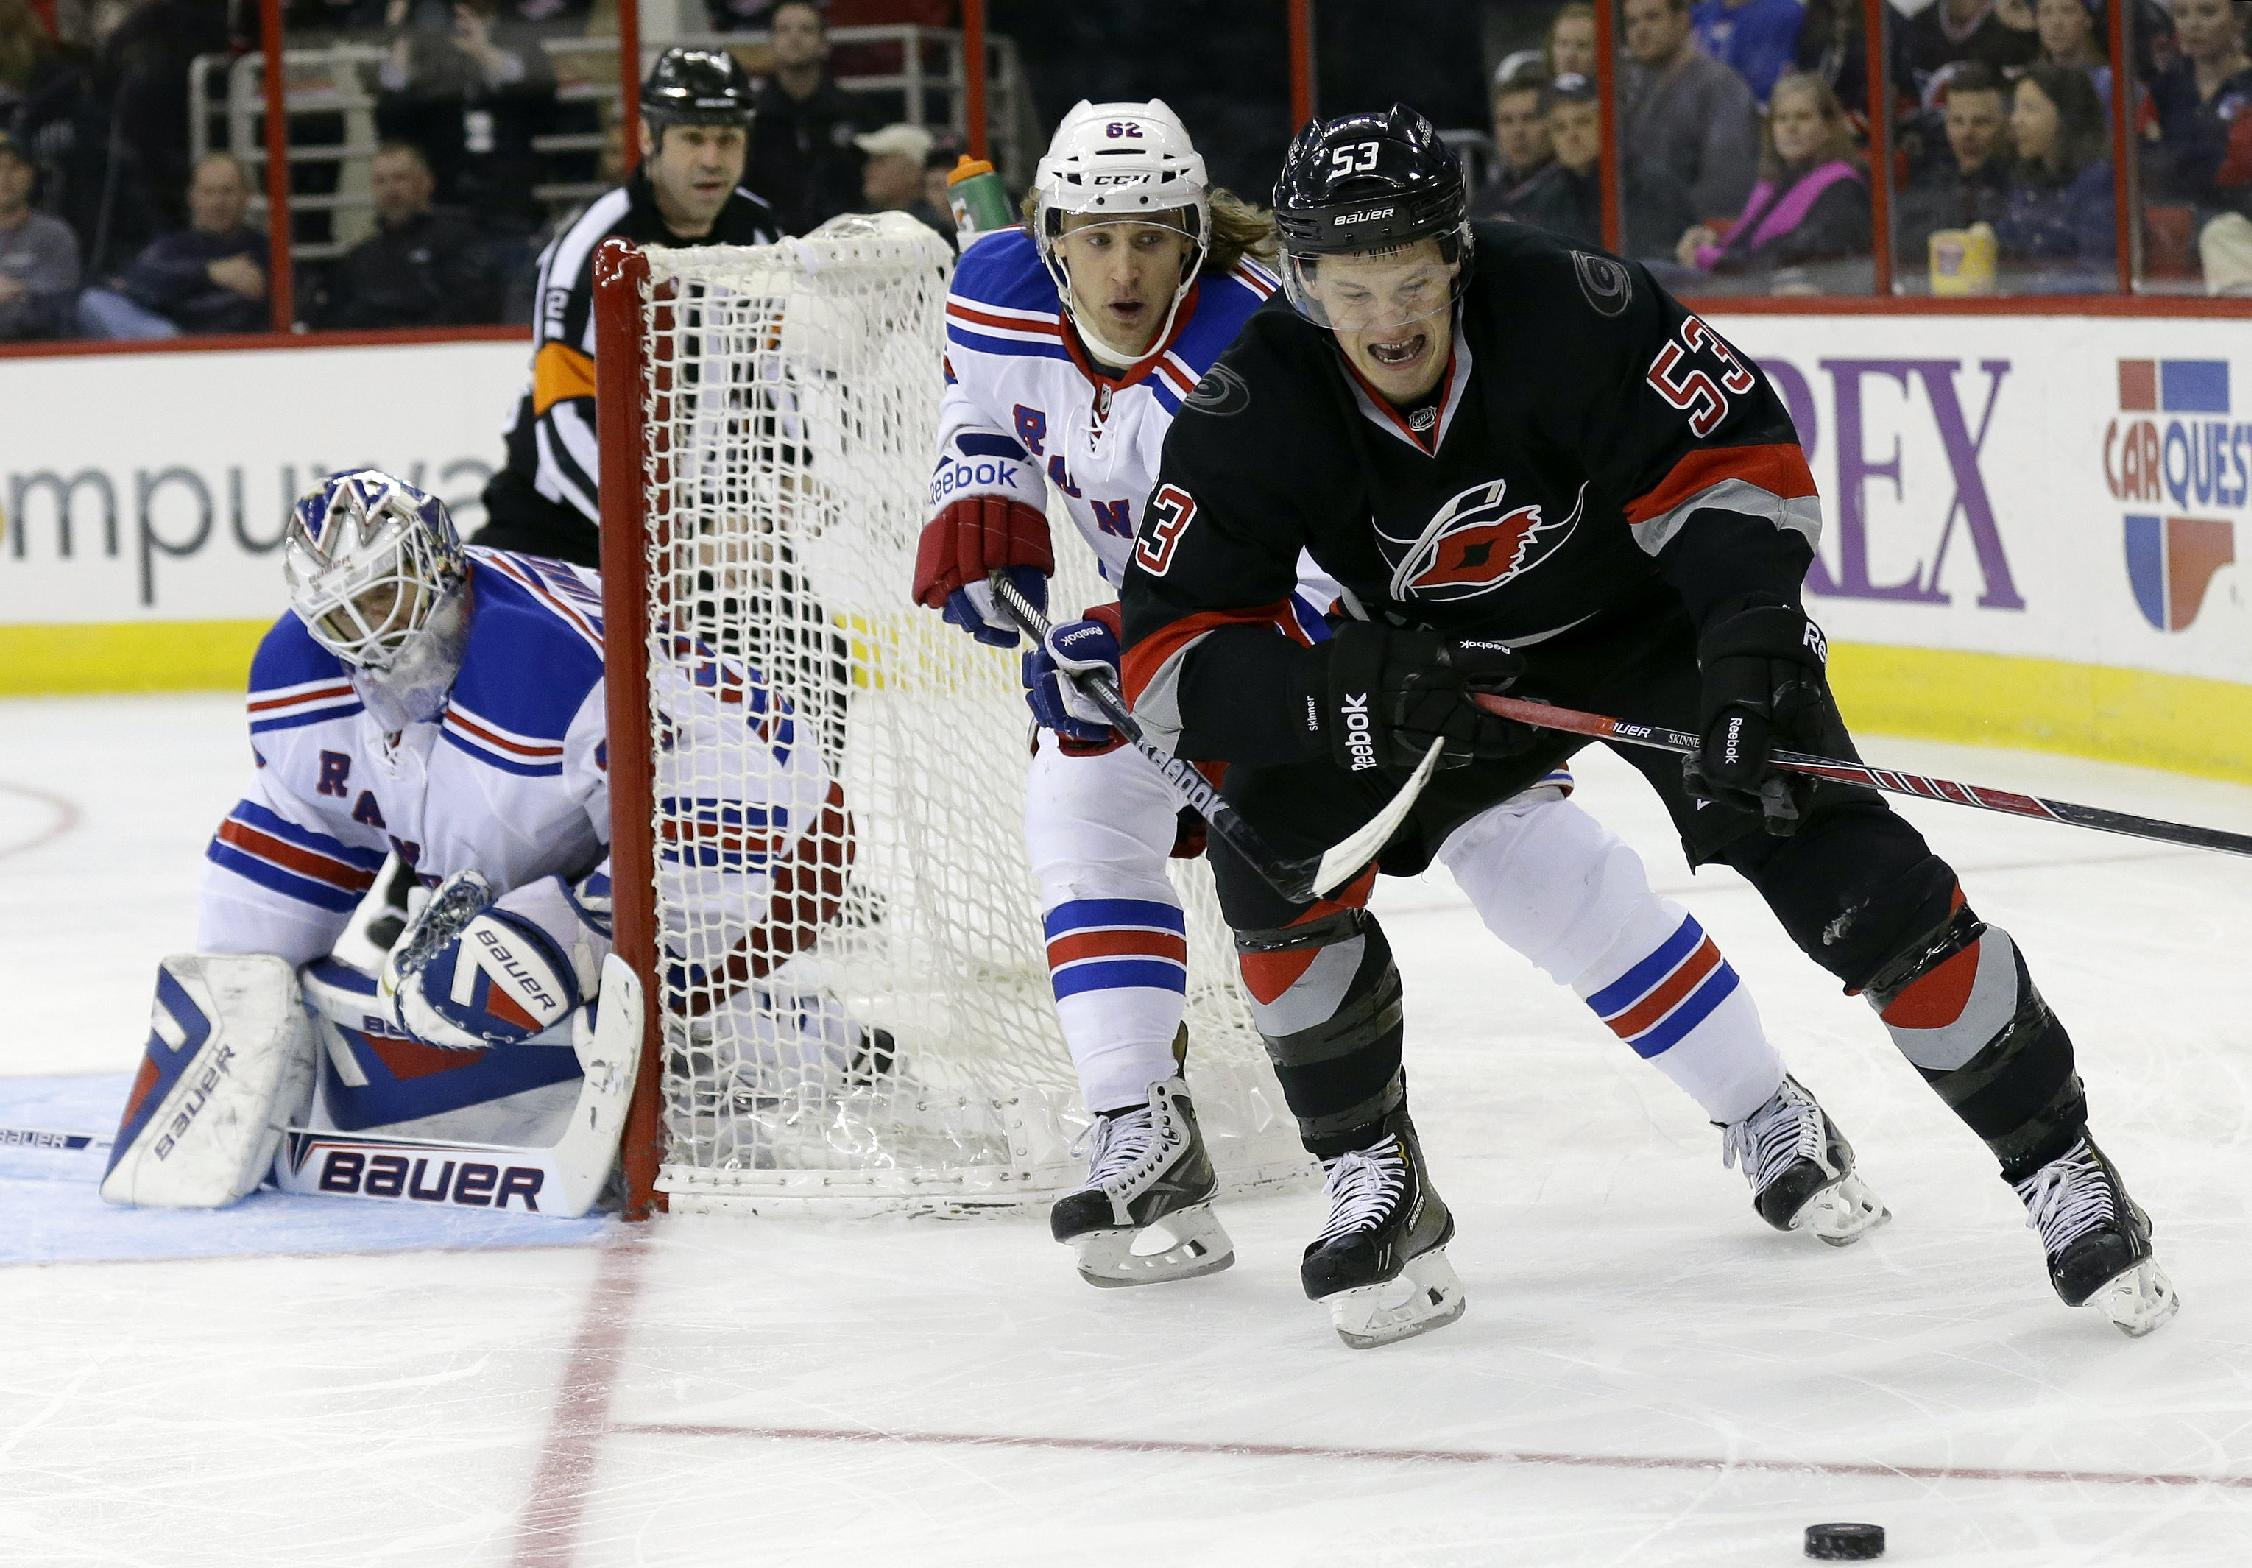 Carolina Hurricanes' Jeff Skinner (53) chases the puck as New York Rangers' Carl Hagelin (62) and goalie Henrik Lundqvist, of Sweden, defend the goal during the second period of an NHL hockey game in Raleigh, N.C., Friday, March 7, 2014